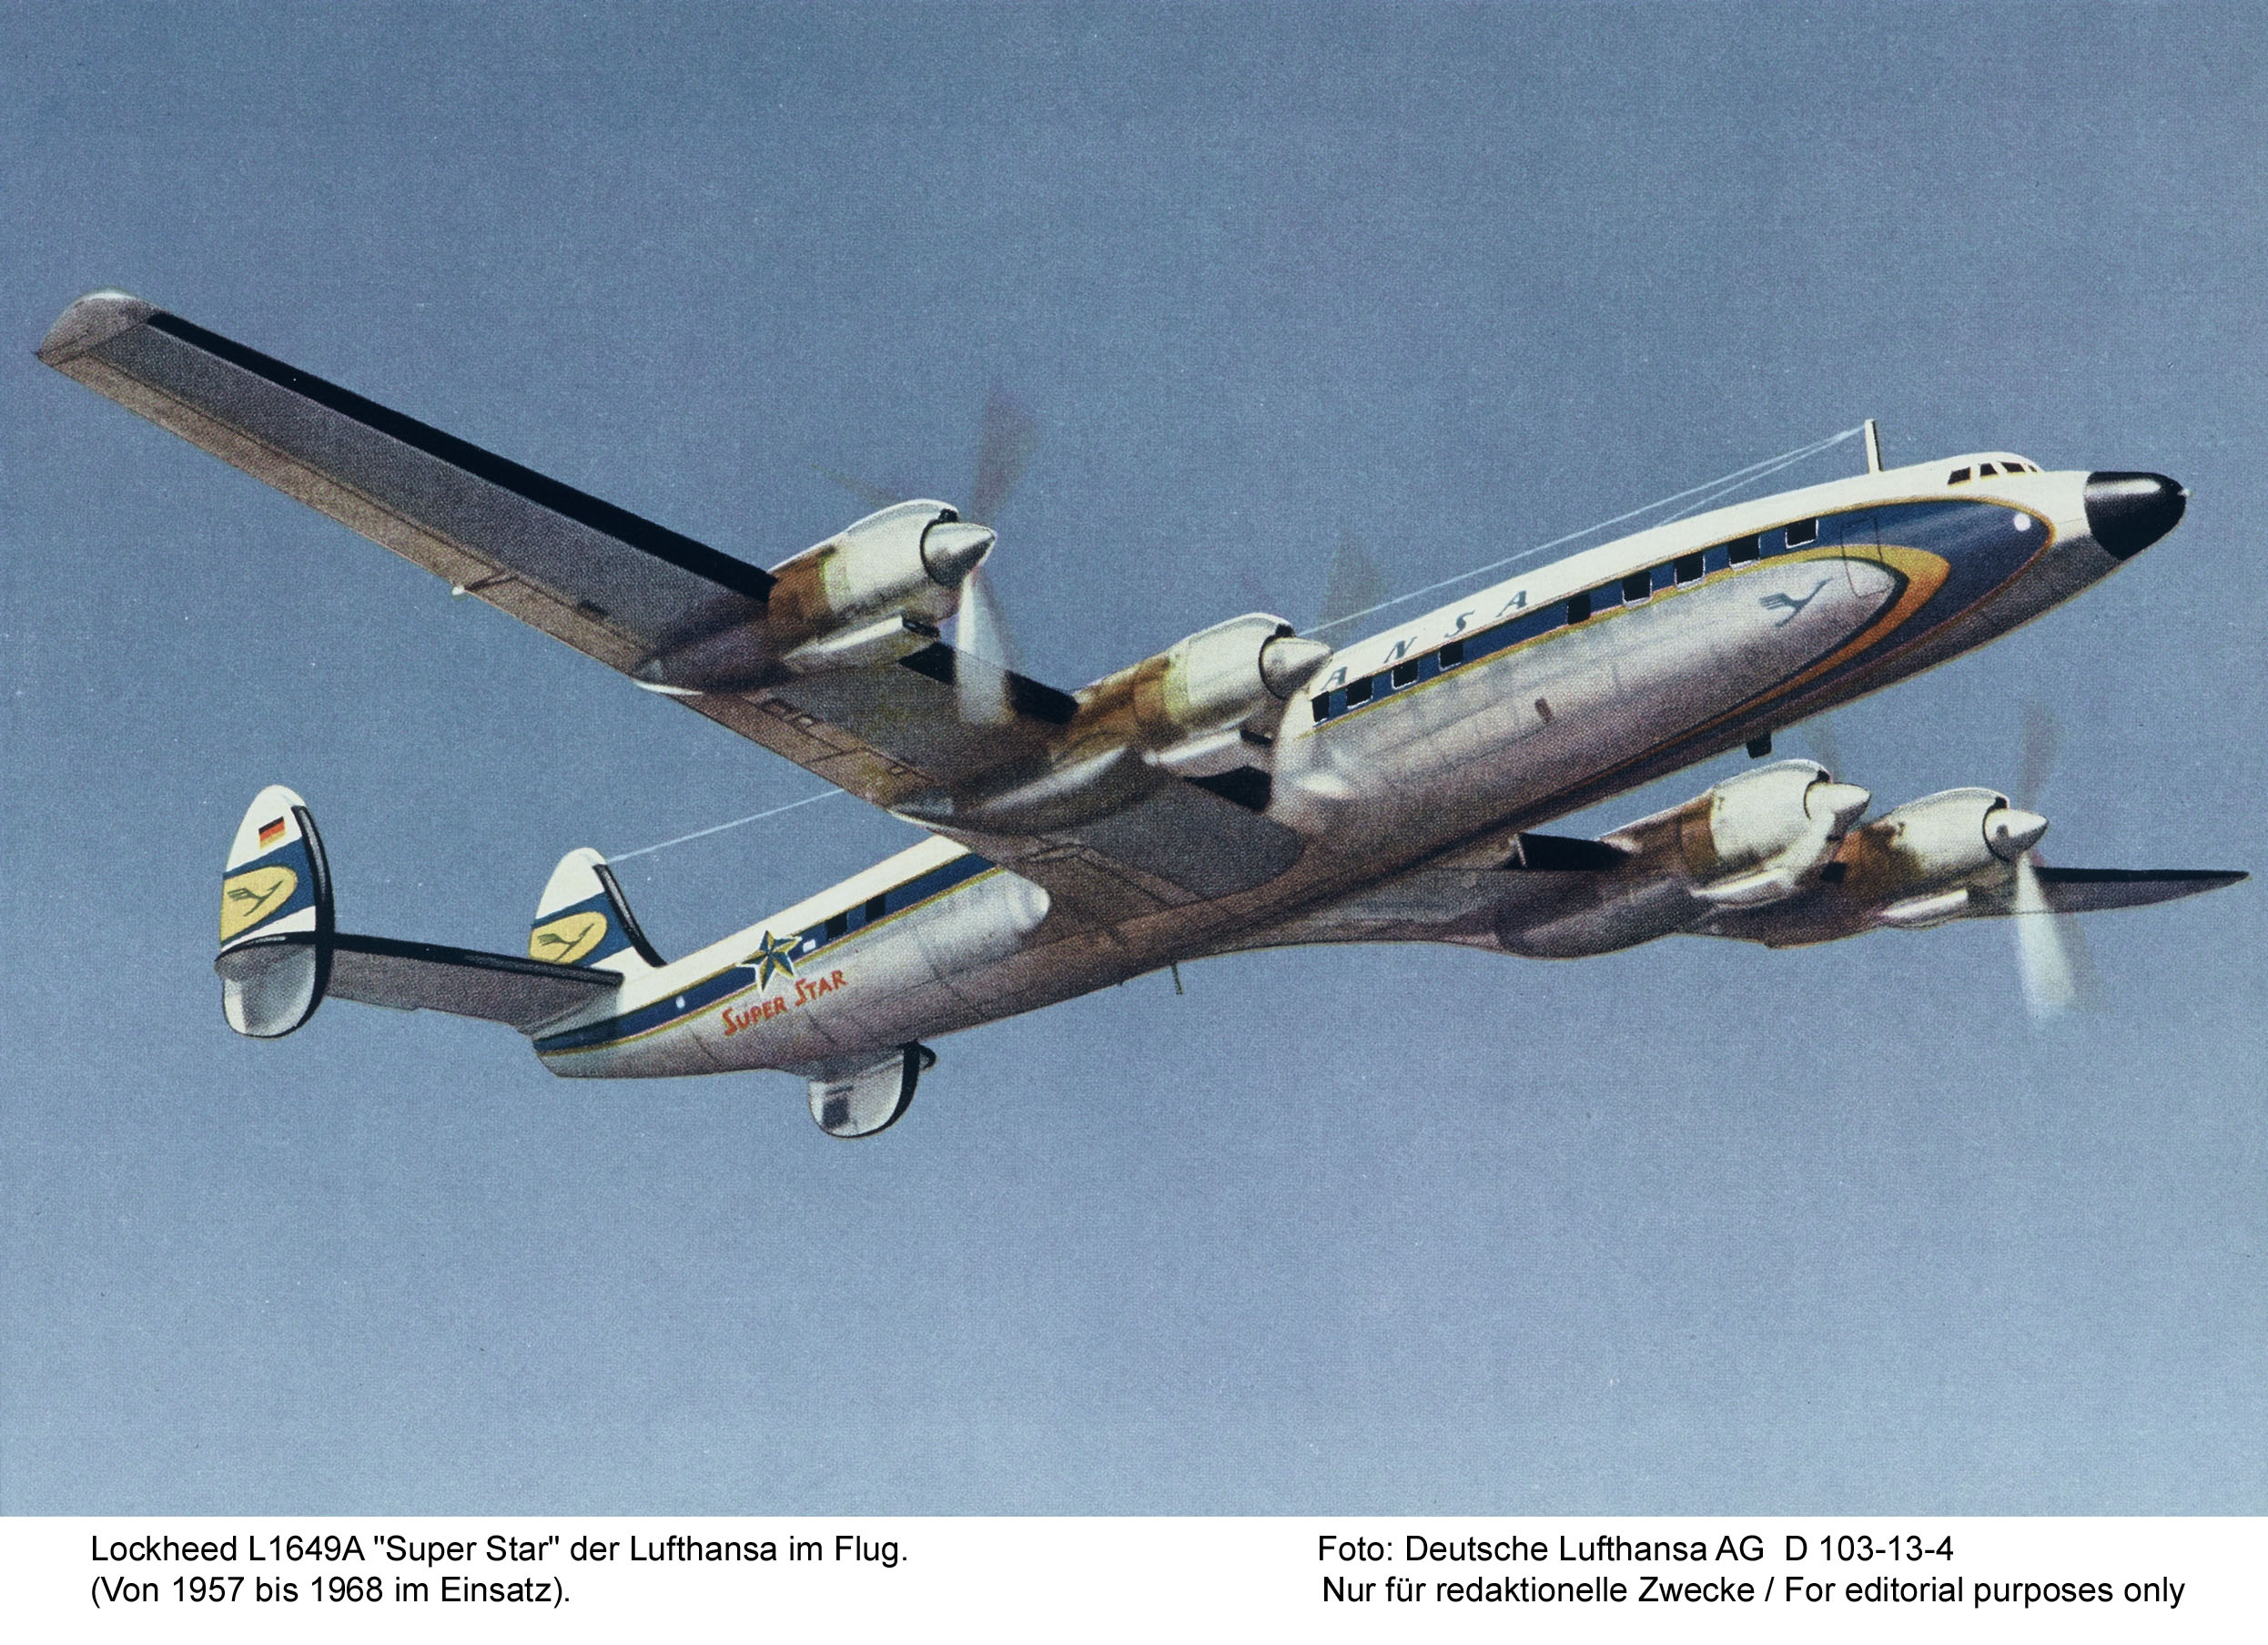 A vintage shot of a Lufthansa L-1649A Super Star in flight. (photo via Wolfgang Borgmann)